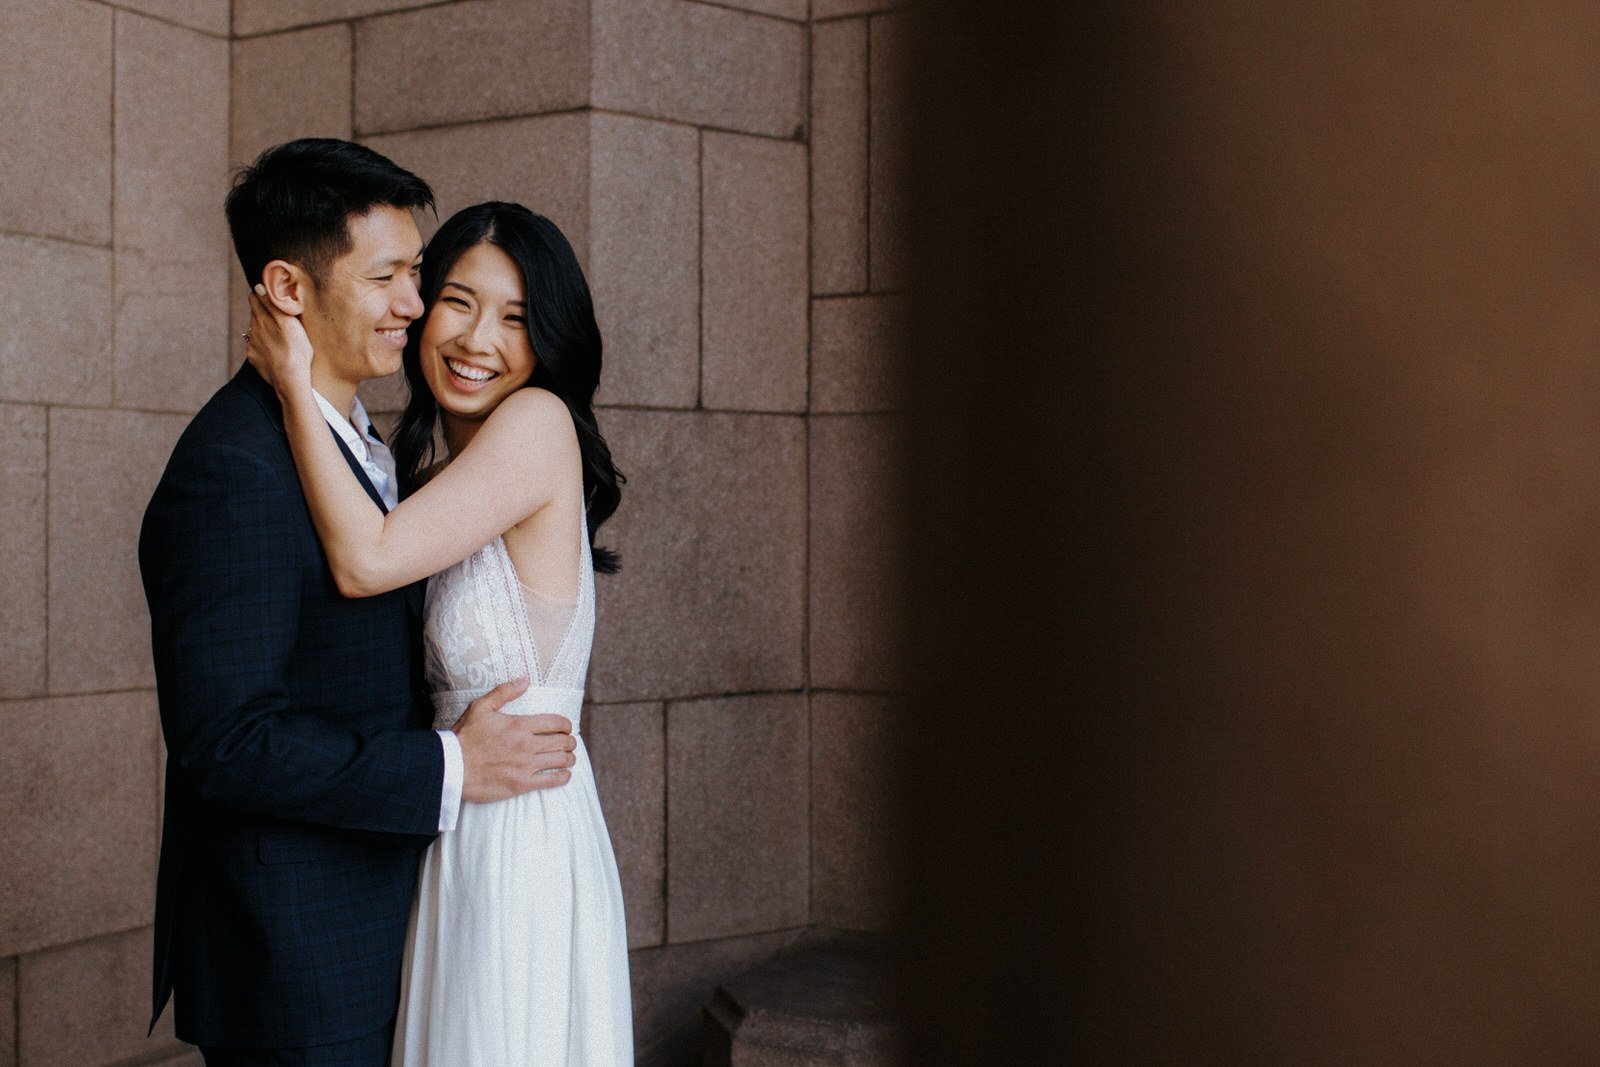 A couple laughs during their engagements session at UW